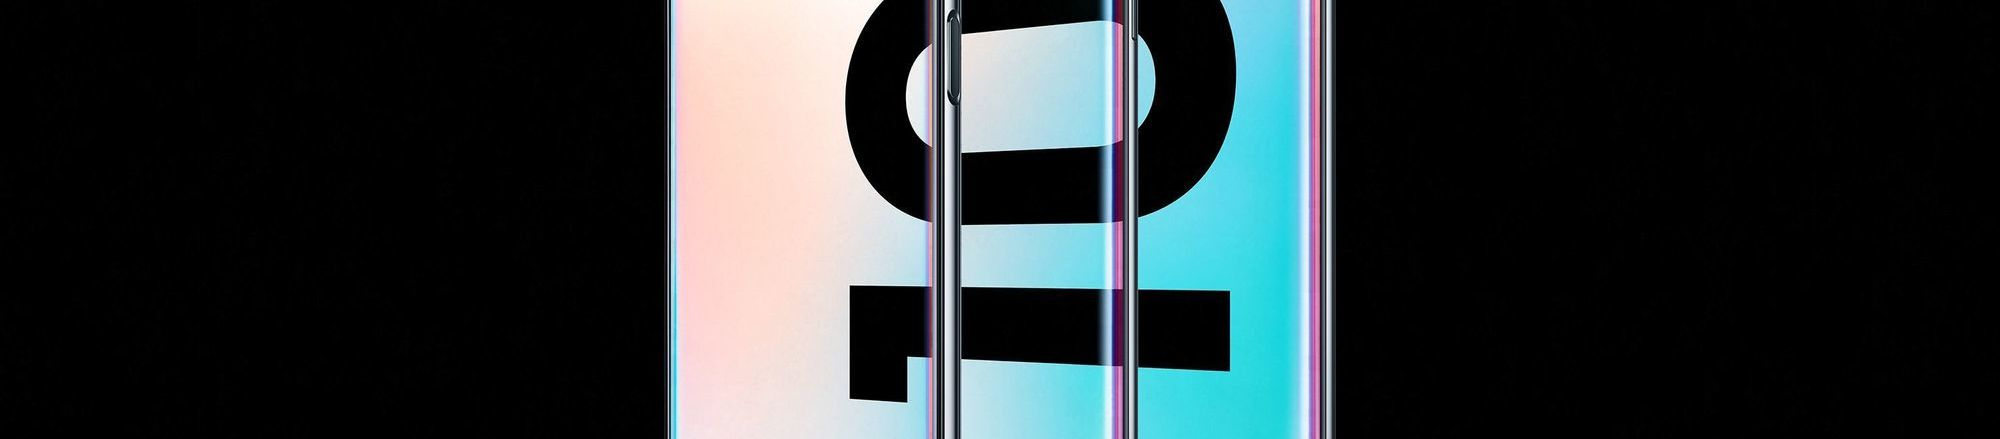 Meet the Samsung Galaxy S10e, S10 and S10+